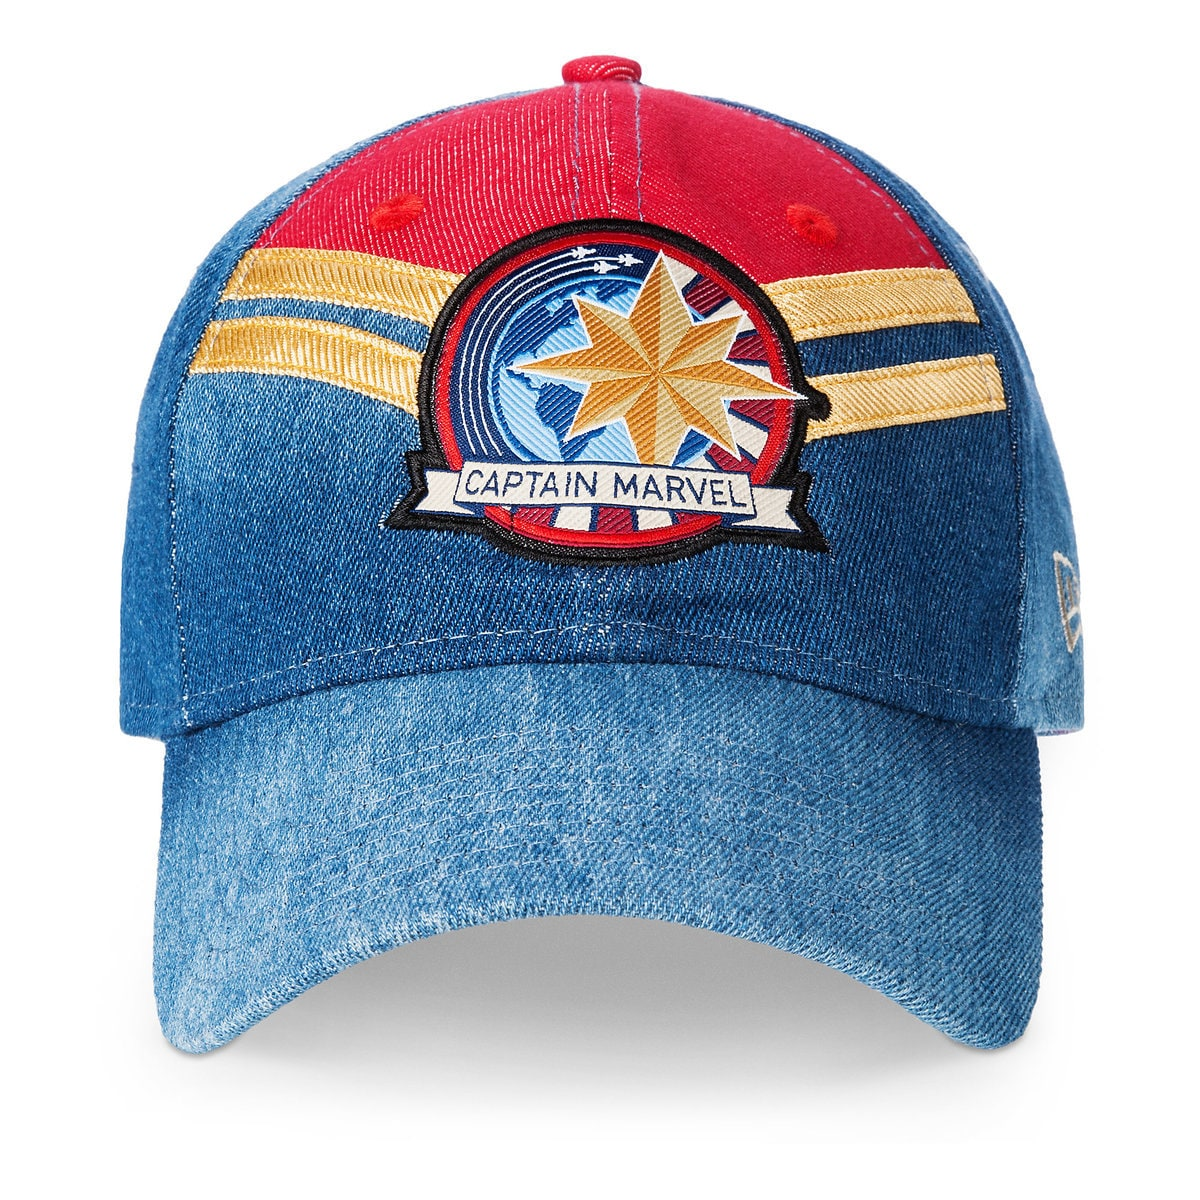 8b679e36 Product Image of Marvel's Captain Marvel Baseball Cap for Adults by New Era  # 1